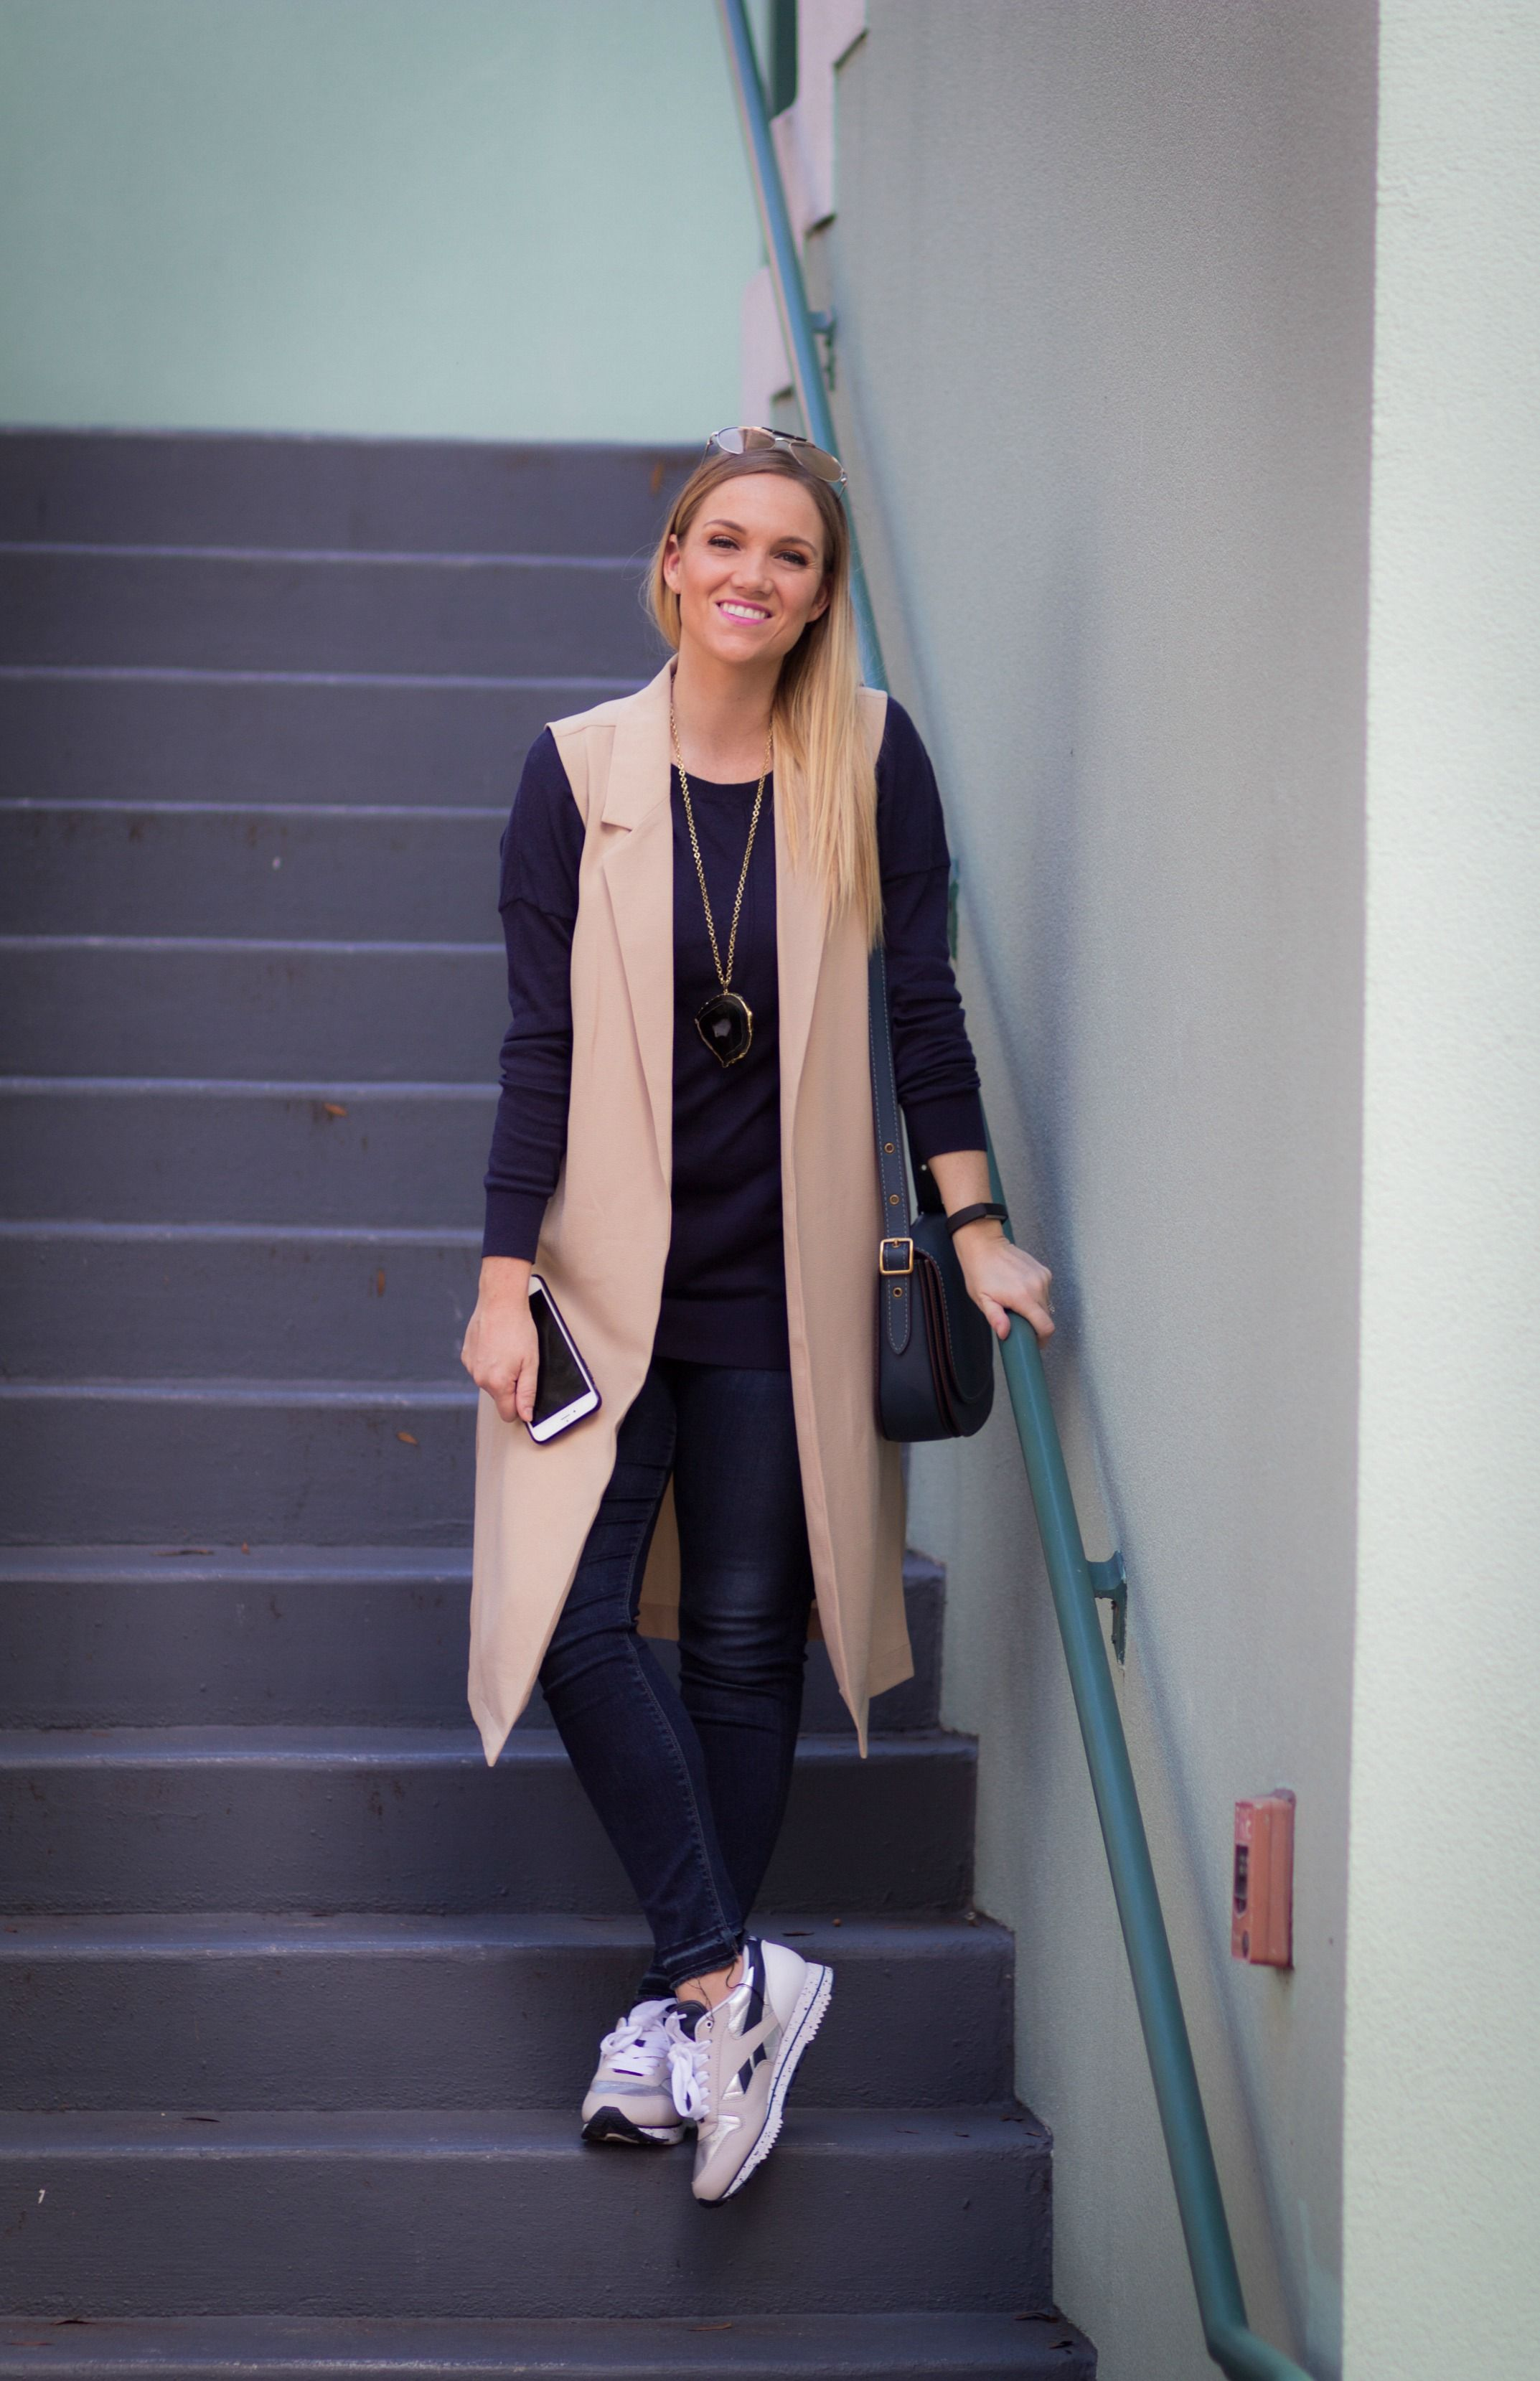 Duster vest & sneaker outfit | athleisure